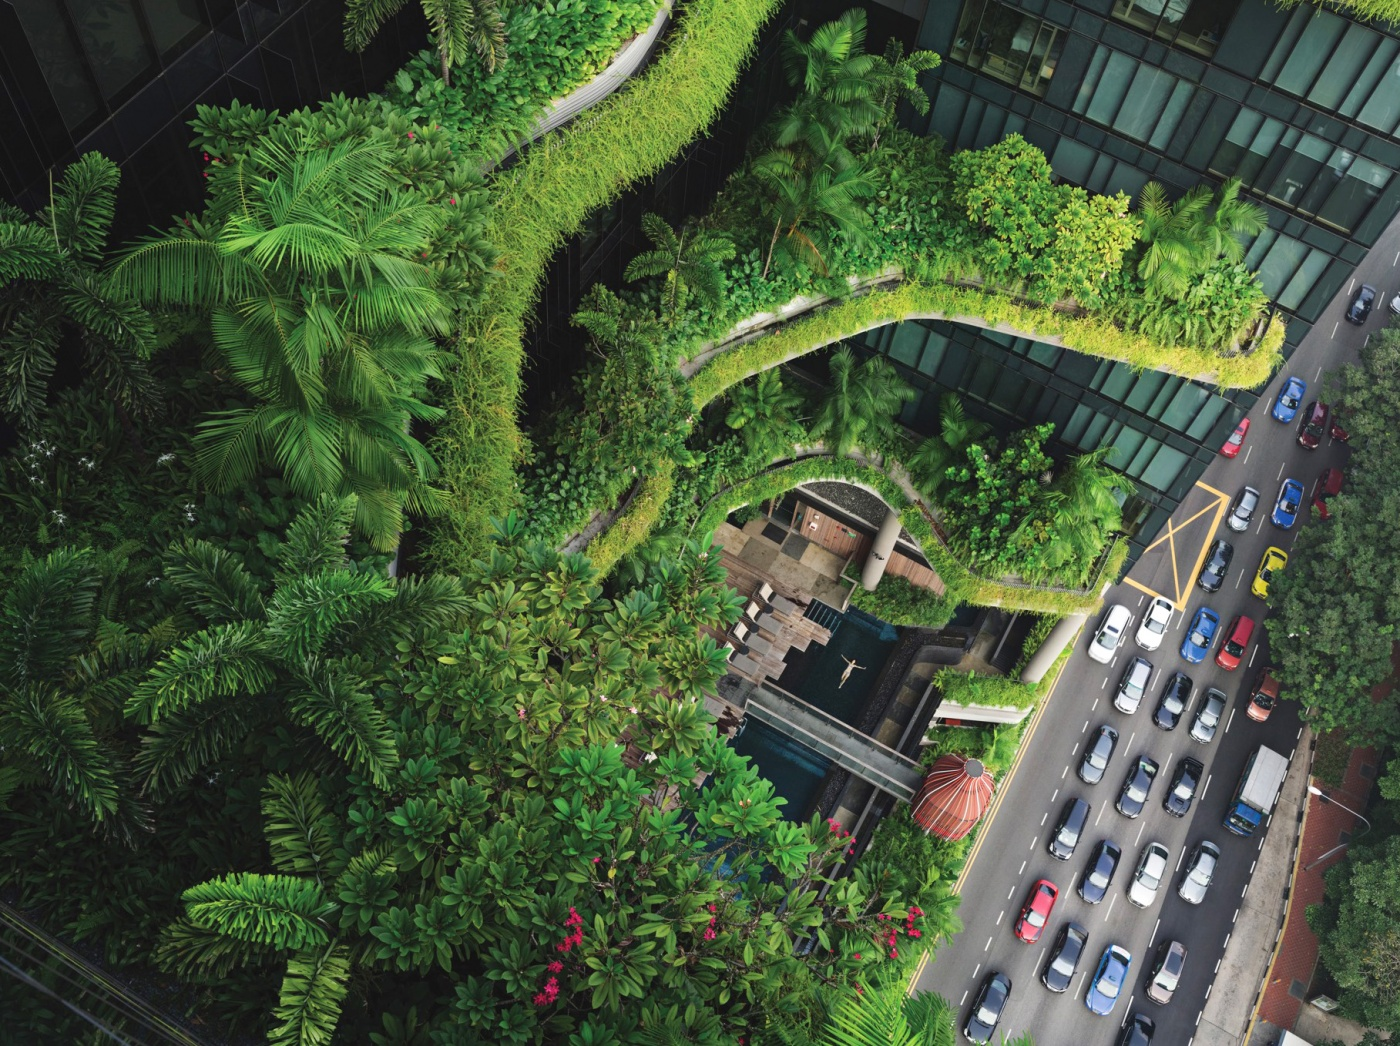 An overhead photograph of a foliage-covered building with a woman floating in a swimming pool, next to a car-filled street.